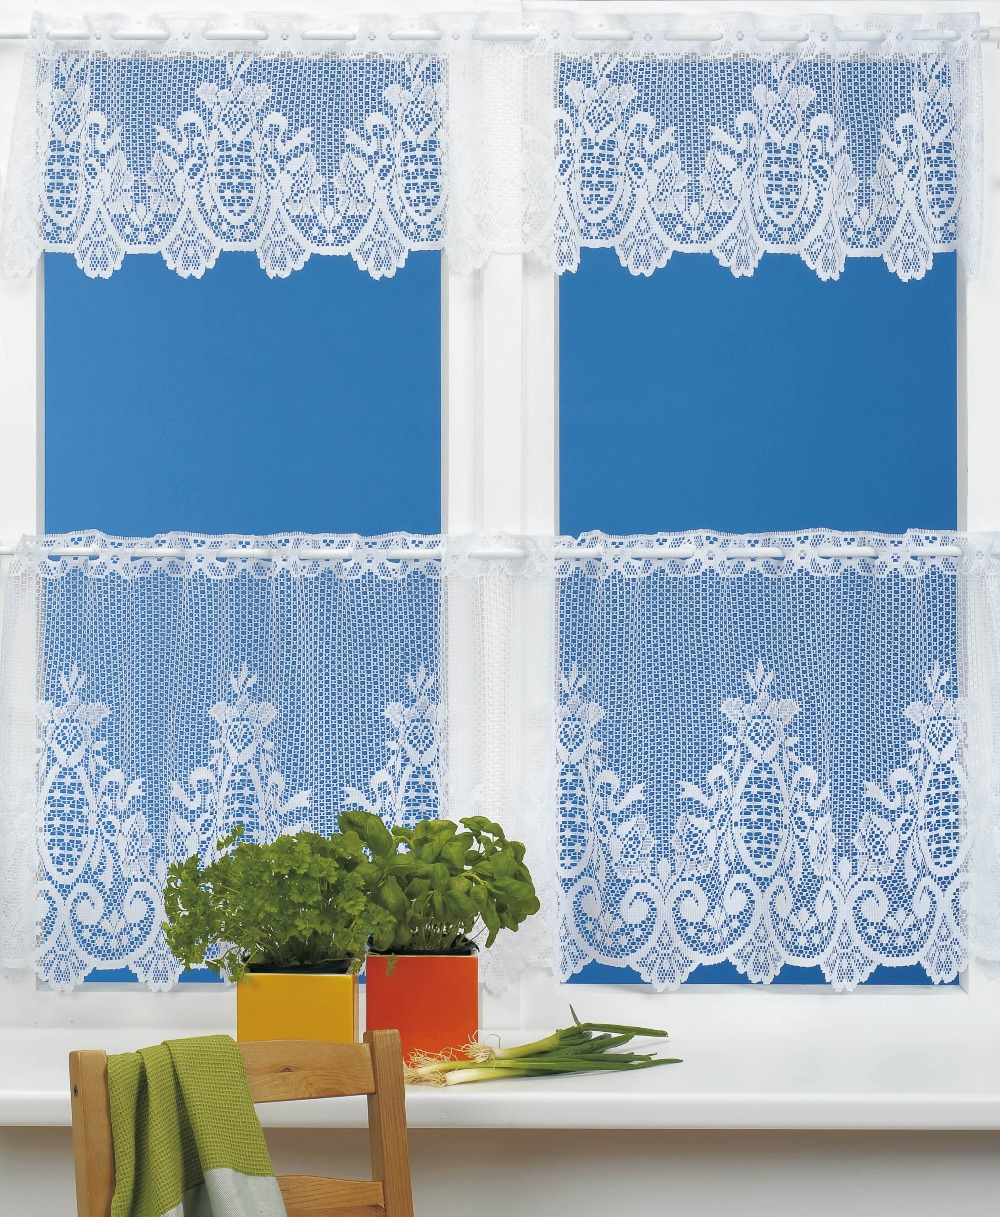 White Lace Kitchen Cafe Curtains Country